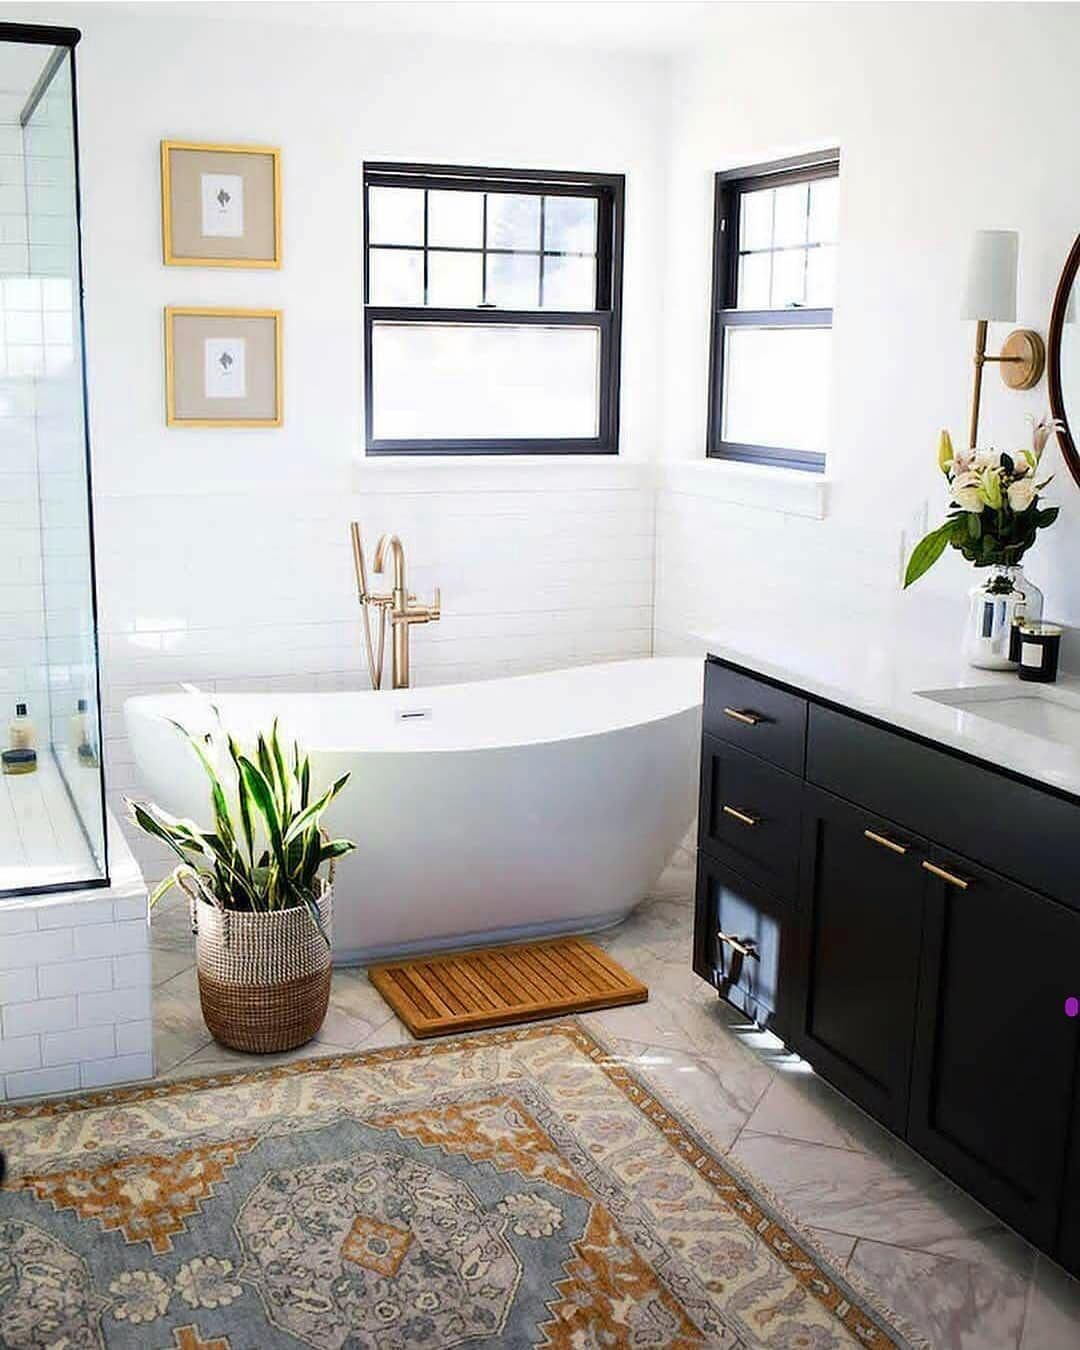 Mydomaine On Instagram 8 Outdated Bathroom Décor Trends